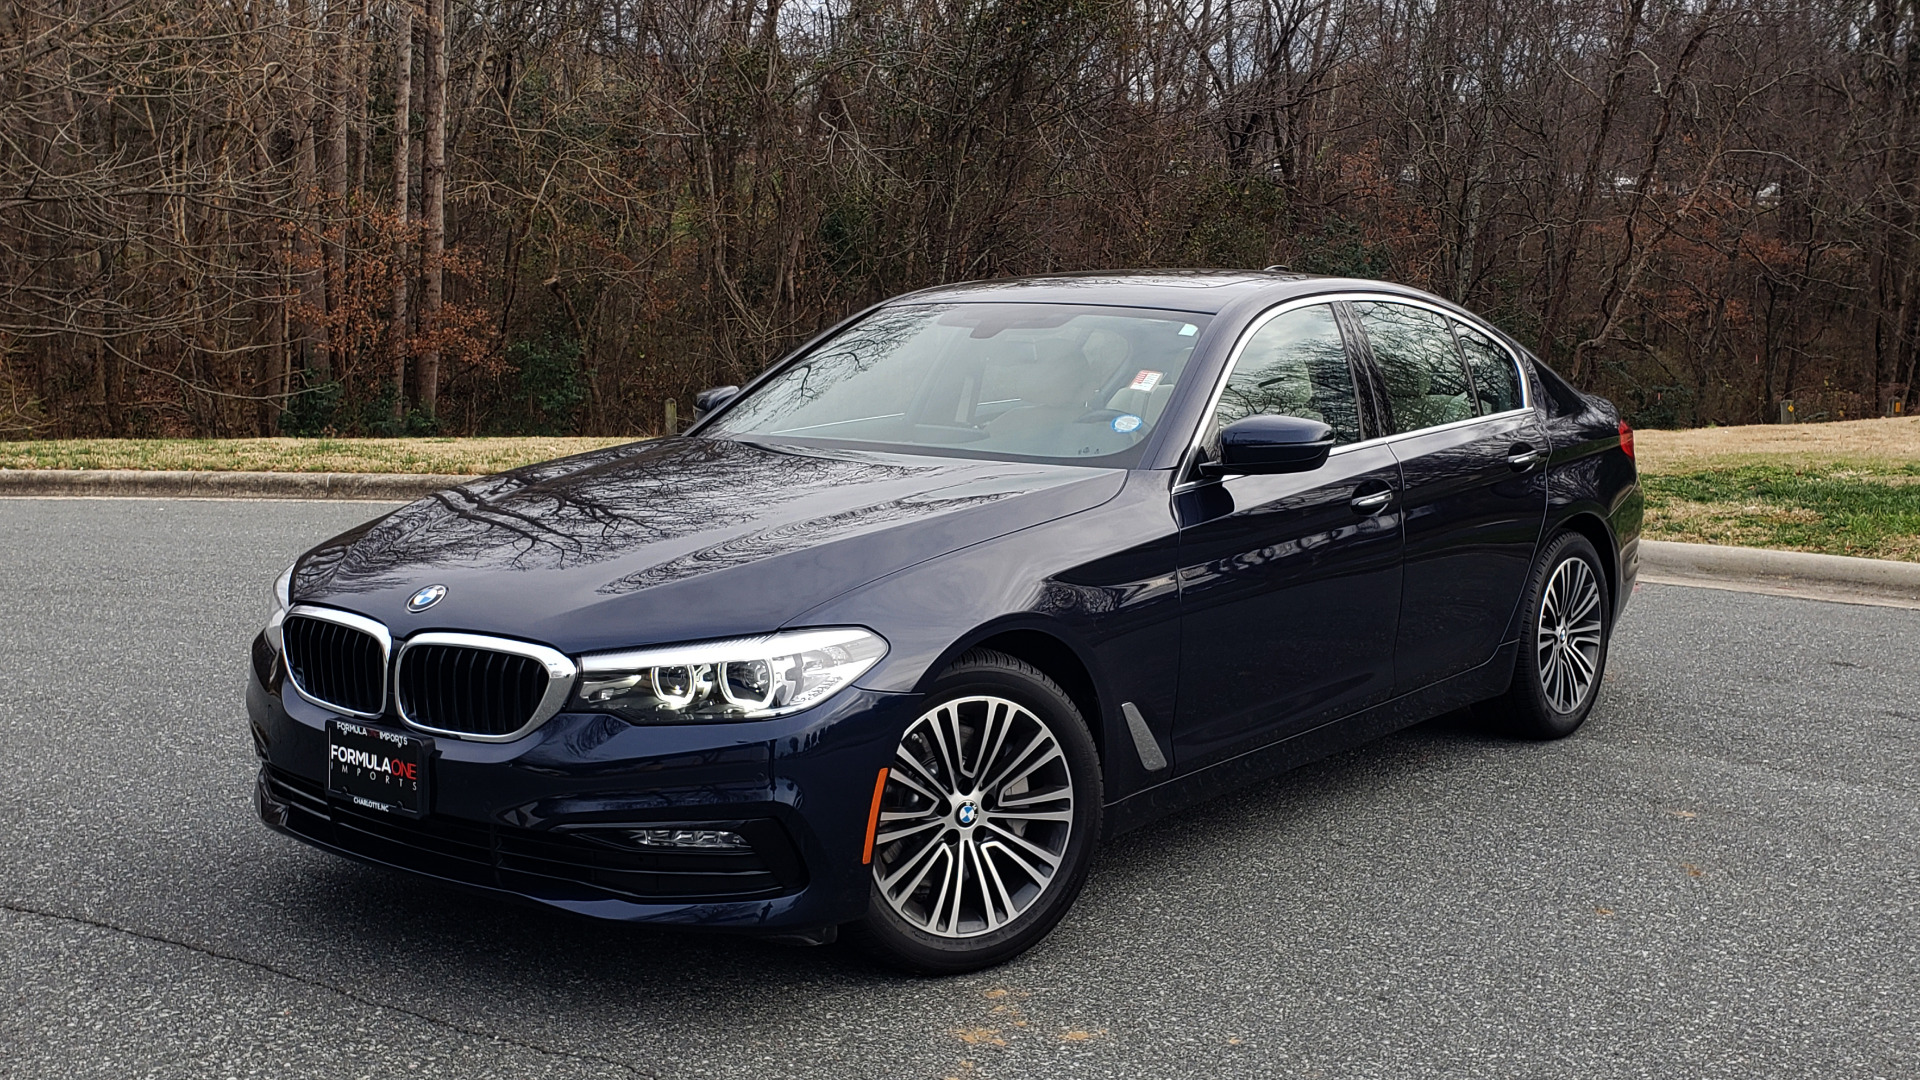 Used 2017 BMW 5 SERIES 530i XDRIVE / SPORTLINE / NAV / SNRF / HTD STS / REARVIEW for sale Sold at Formula Imports in Charlotte NC 28227 1